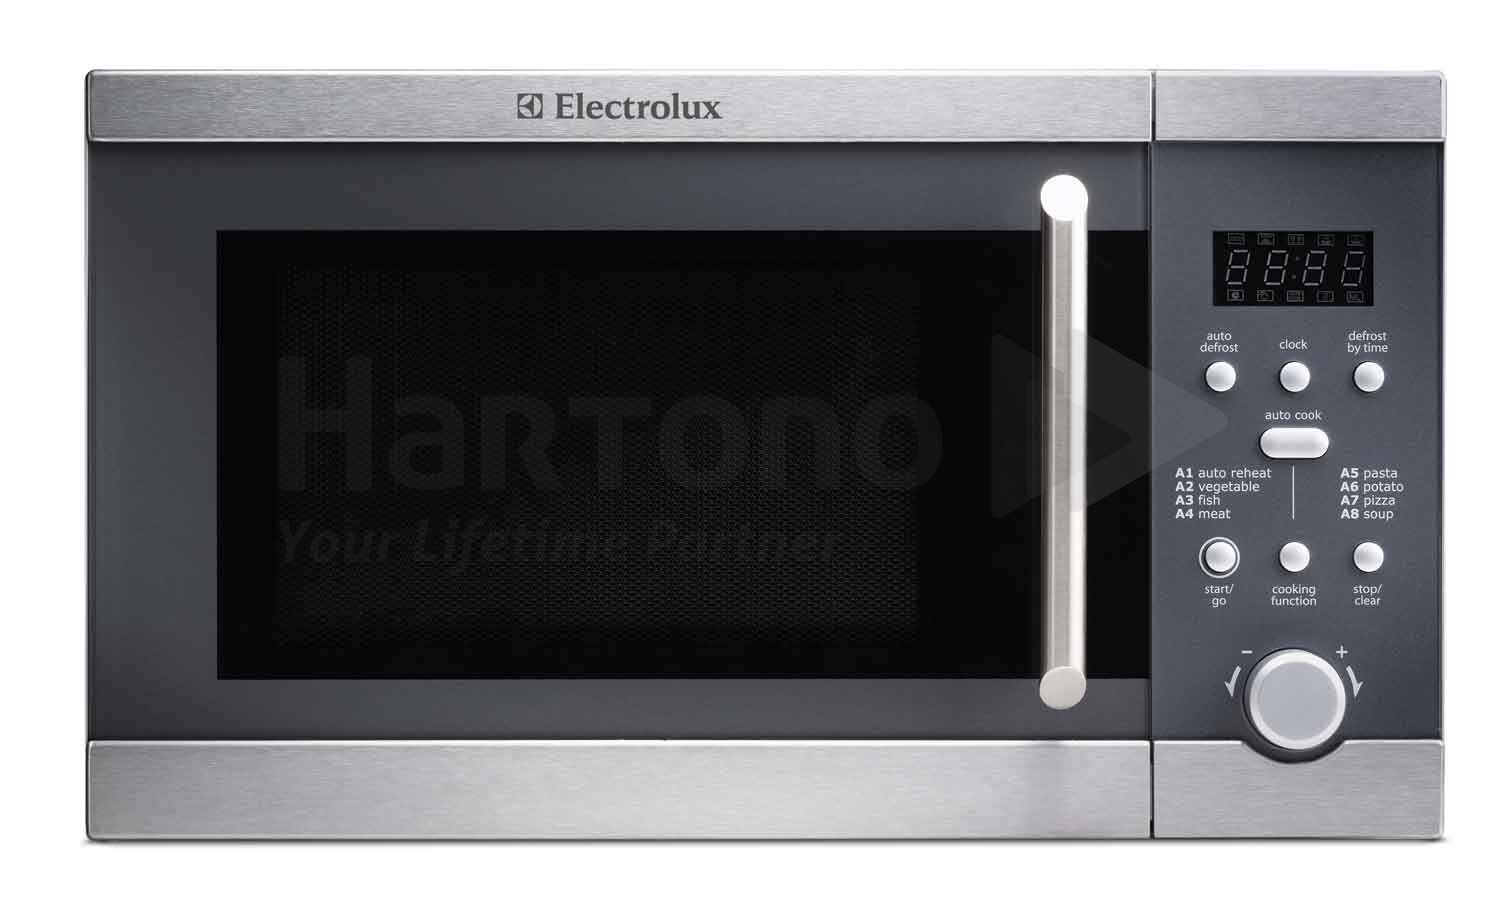 Electrolux 20 Liter Microwave Oven